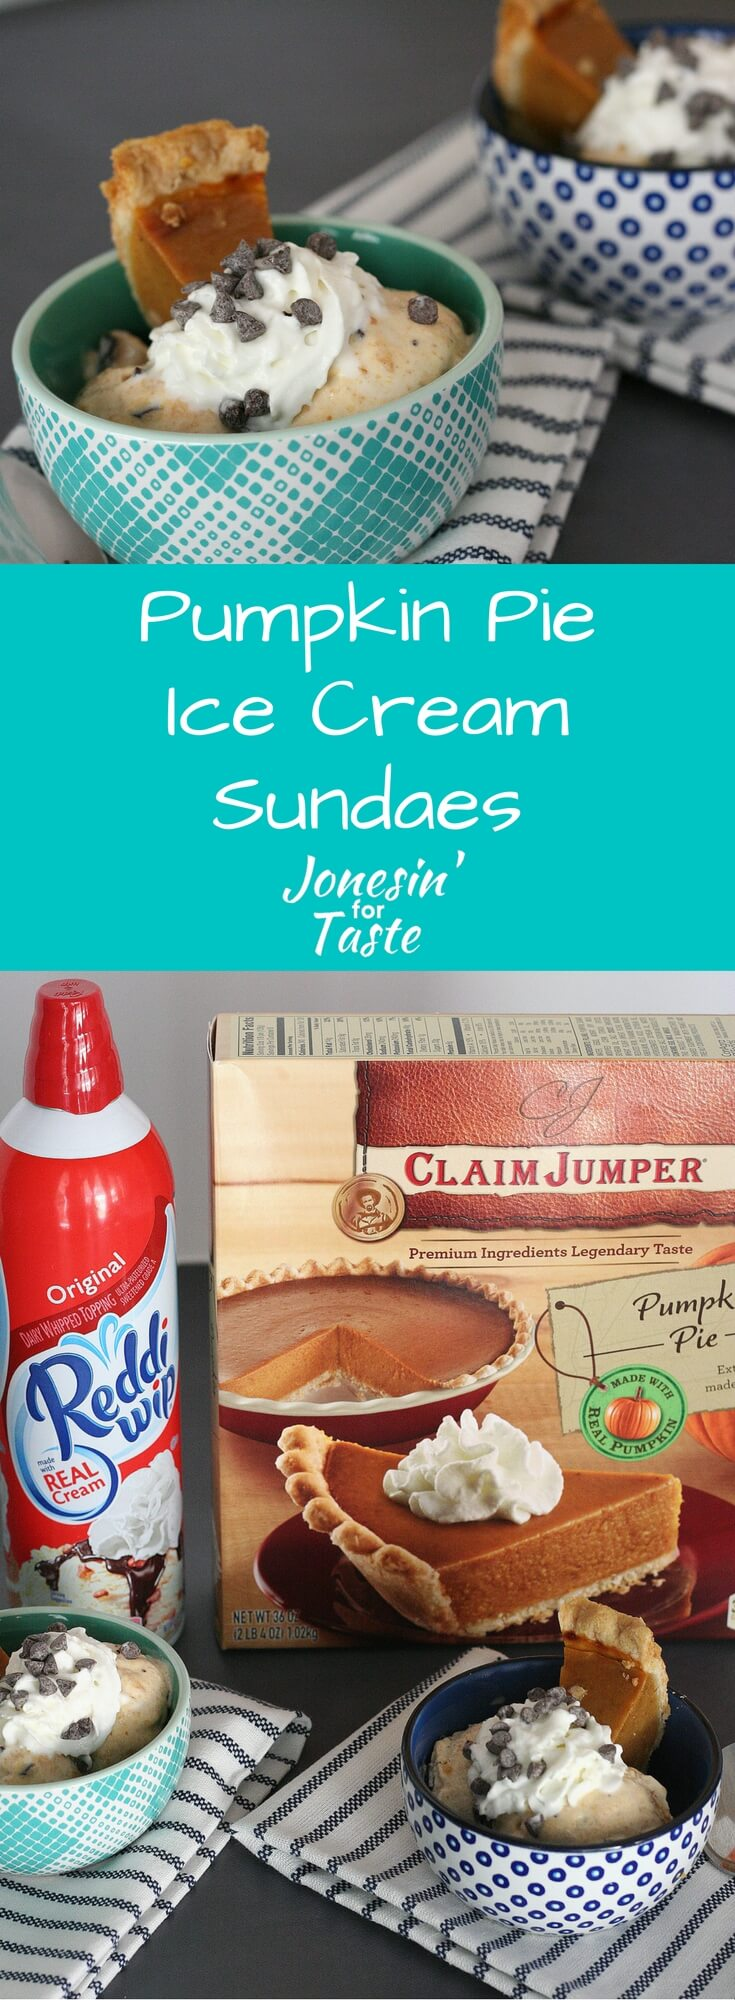 Have leftover pumpkin pie? Use the pie to create a new dessert into these Pumpkin Pie Ice Cream Sundaes to reinvent those leftovers! #pumpkinpie #icecreamsundaes